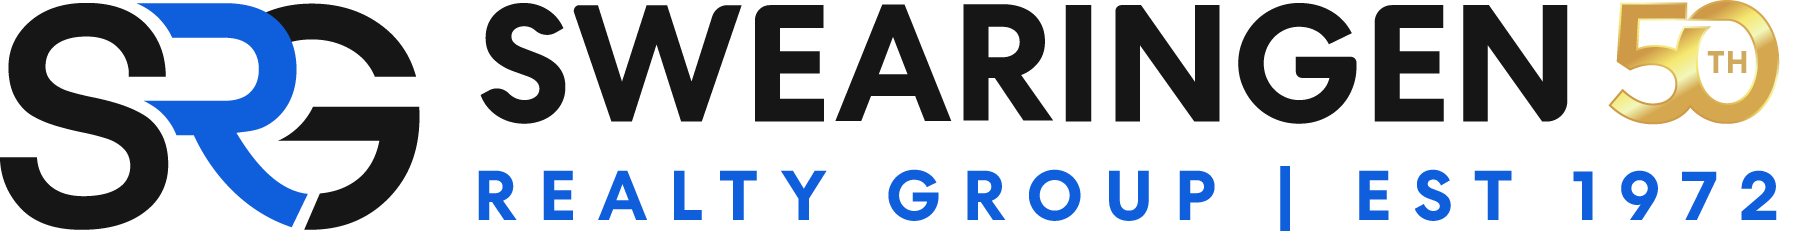 Swearingen Realty Group L.L.C Logo